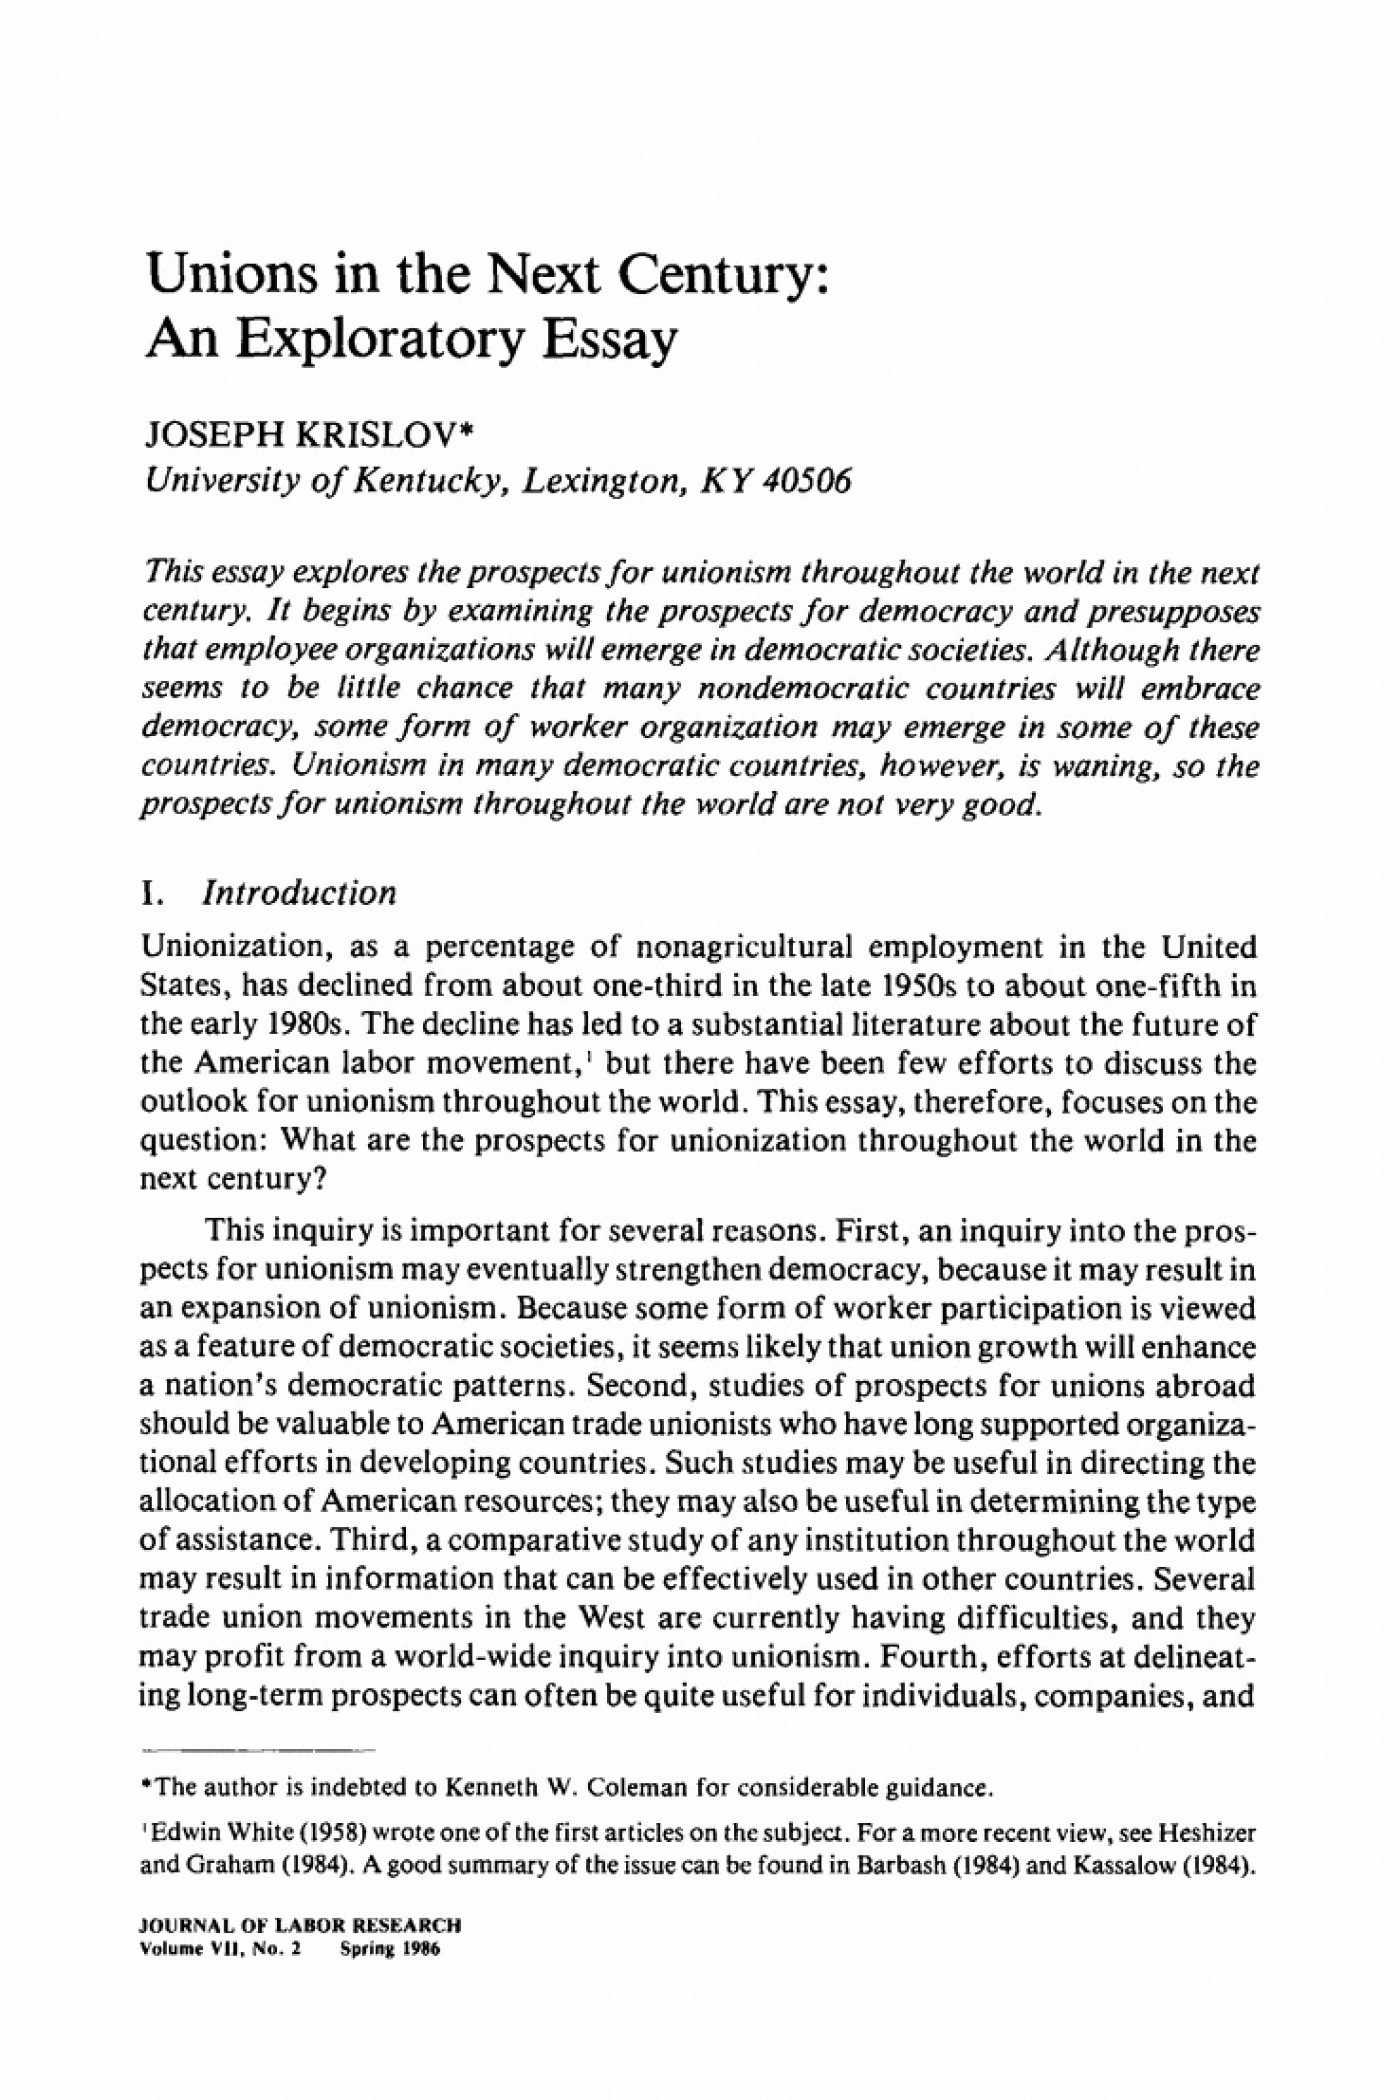 001 Exploratory Essay Example Unions In The Next Century An Springer L Stunning Definition Topics About Sports Sample Pdf 1400